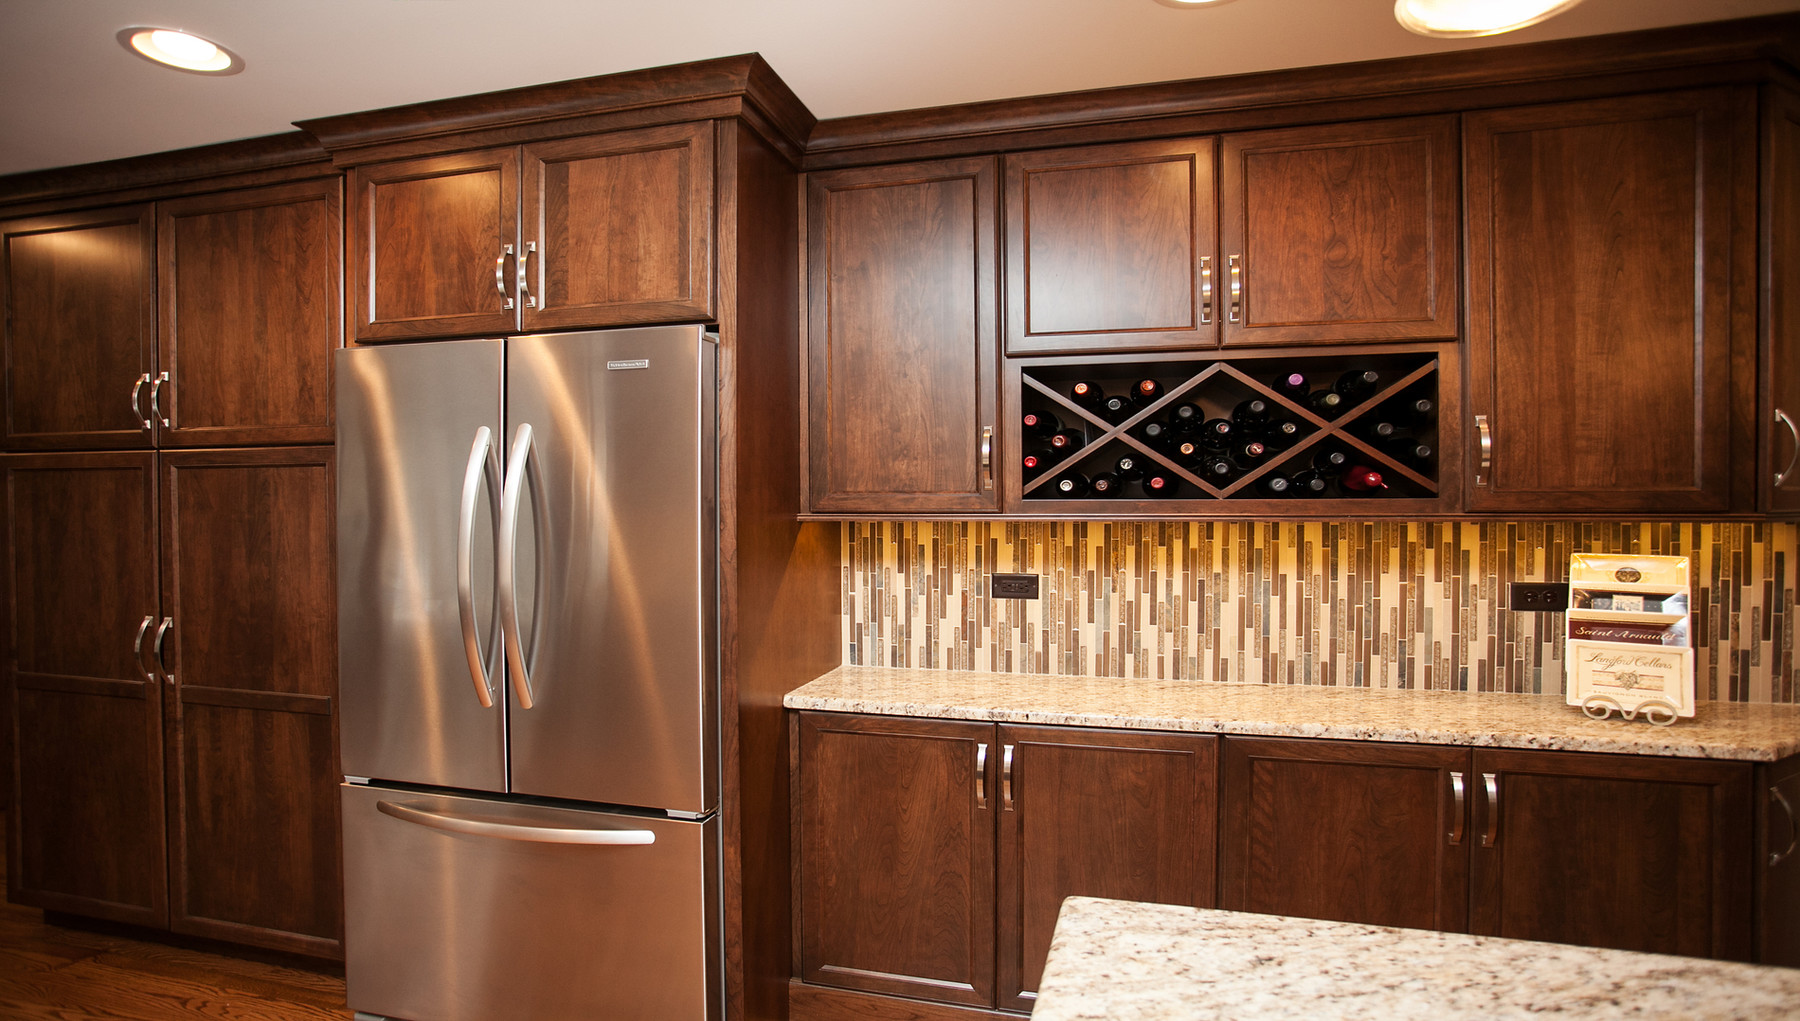 Reduced depth kitchen cabinets - Room Depth Restricted Our Ability To Add A Full Depth Island Instead We Constructed A Slender Island And Reduced The Depth Of The Wall Cabinets To Create